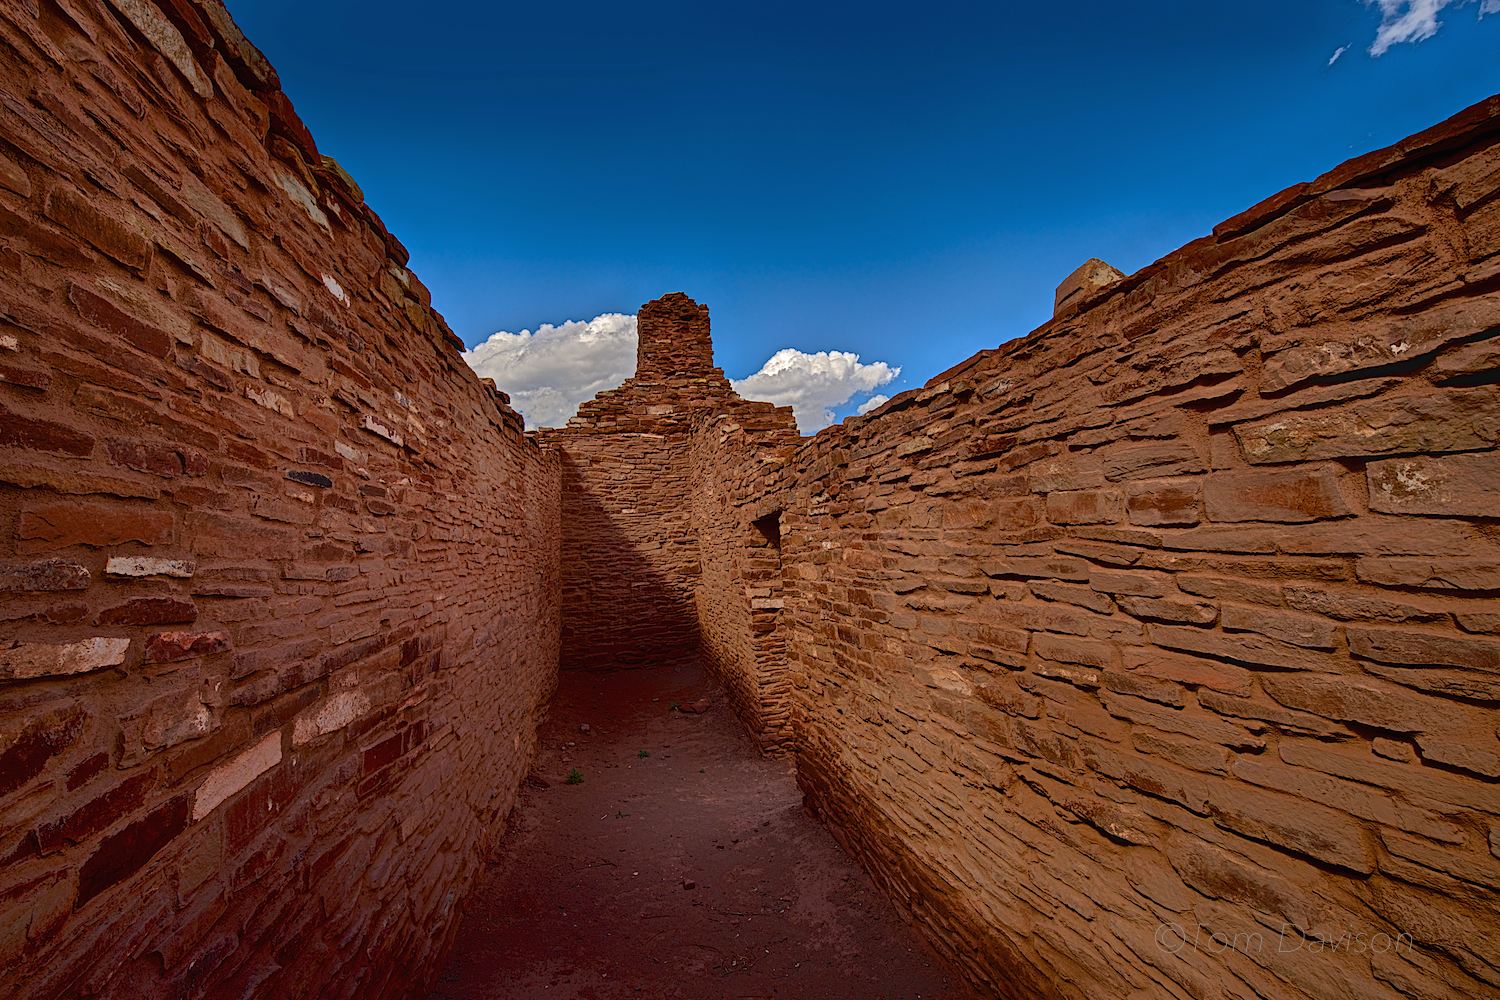 The walls were sometimes so high you could not see over them. It was easy to feel like you were in a rock maze.